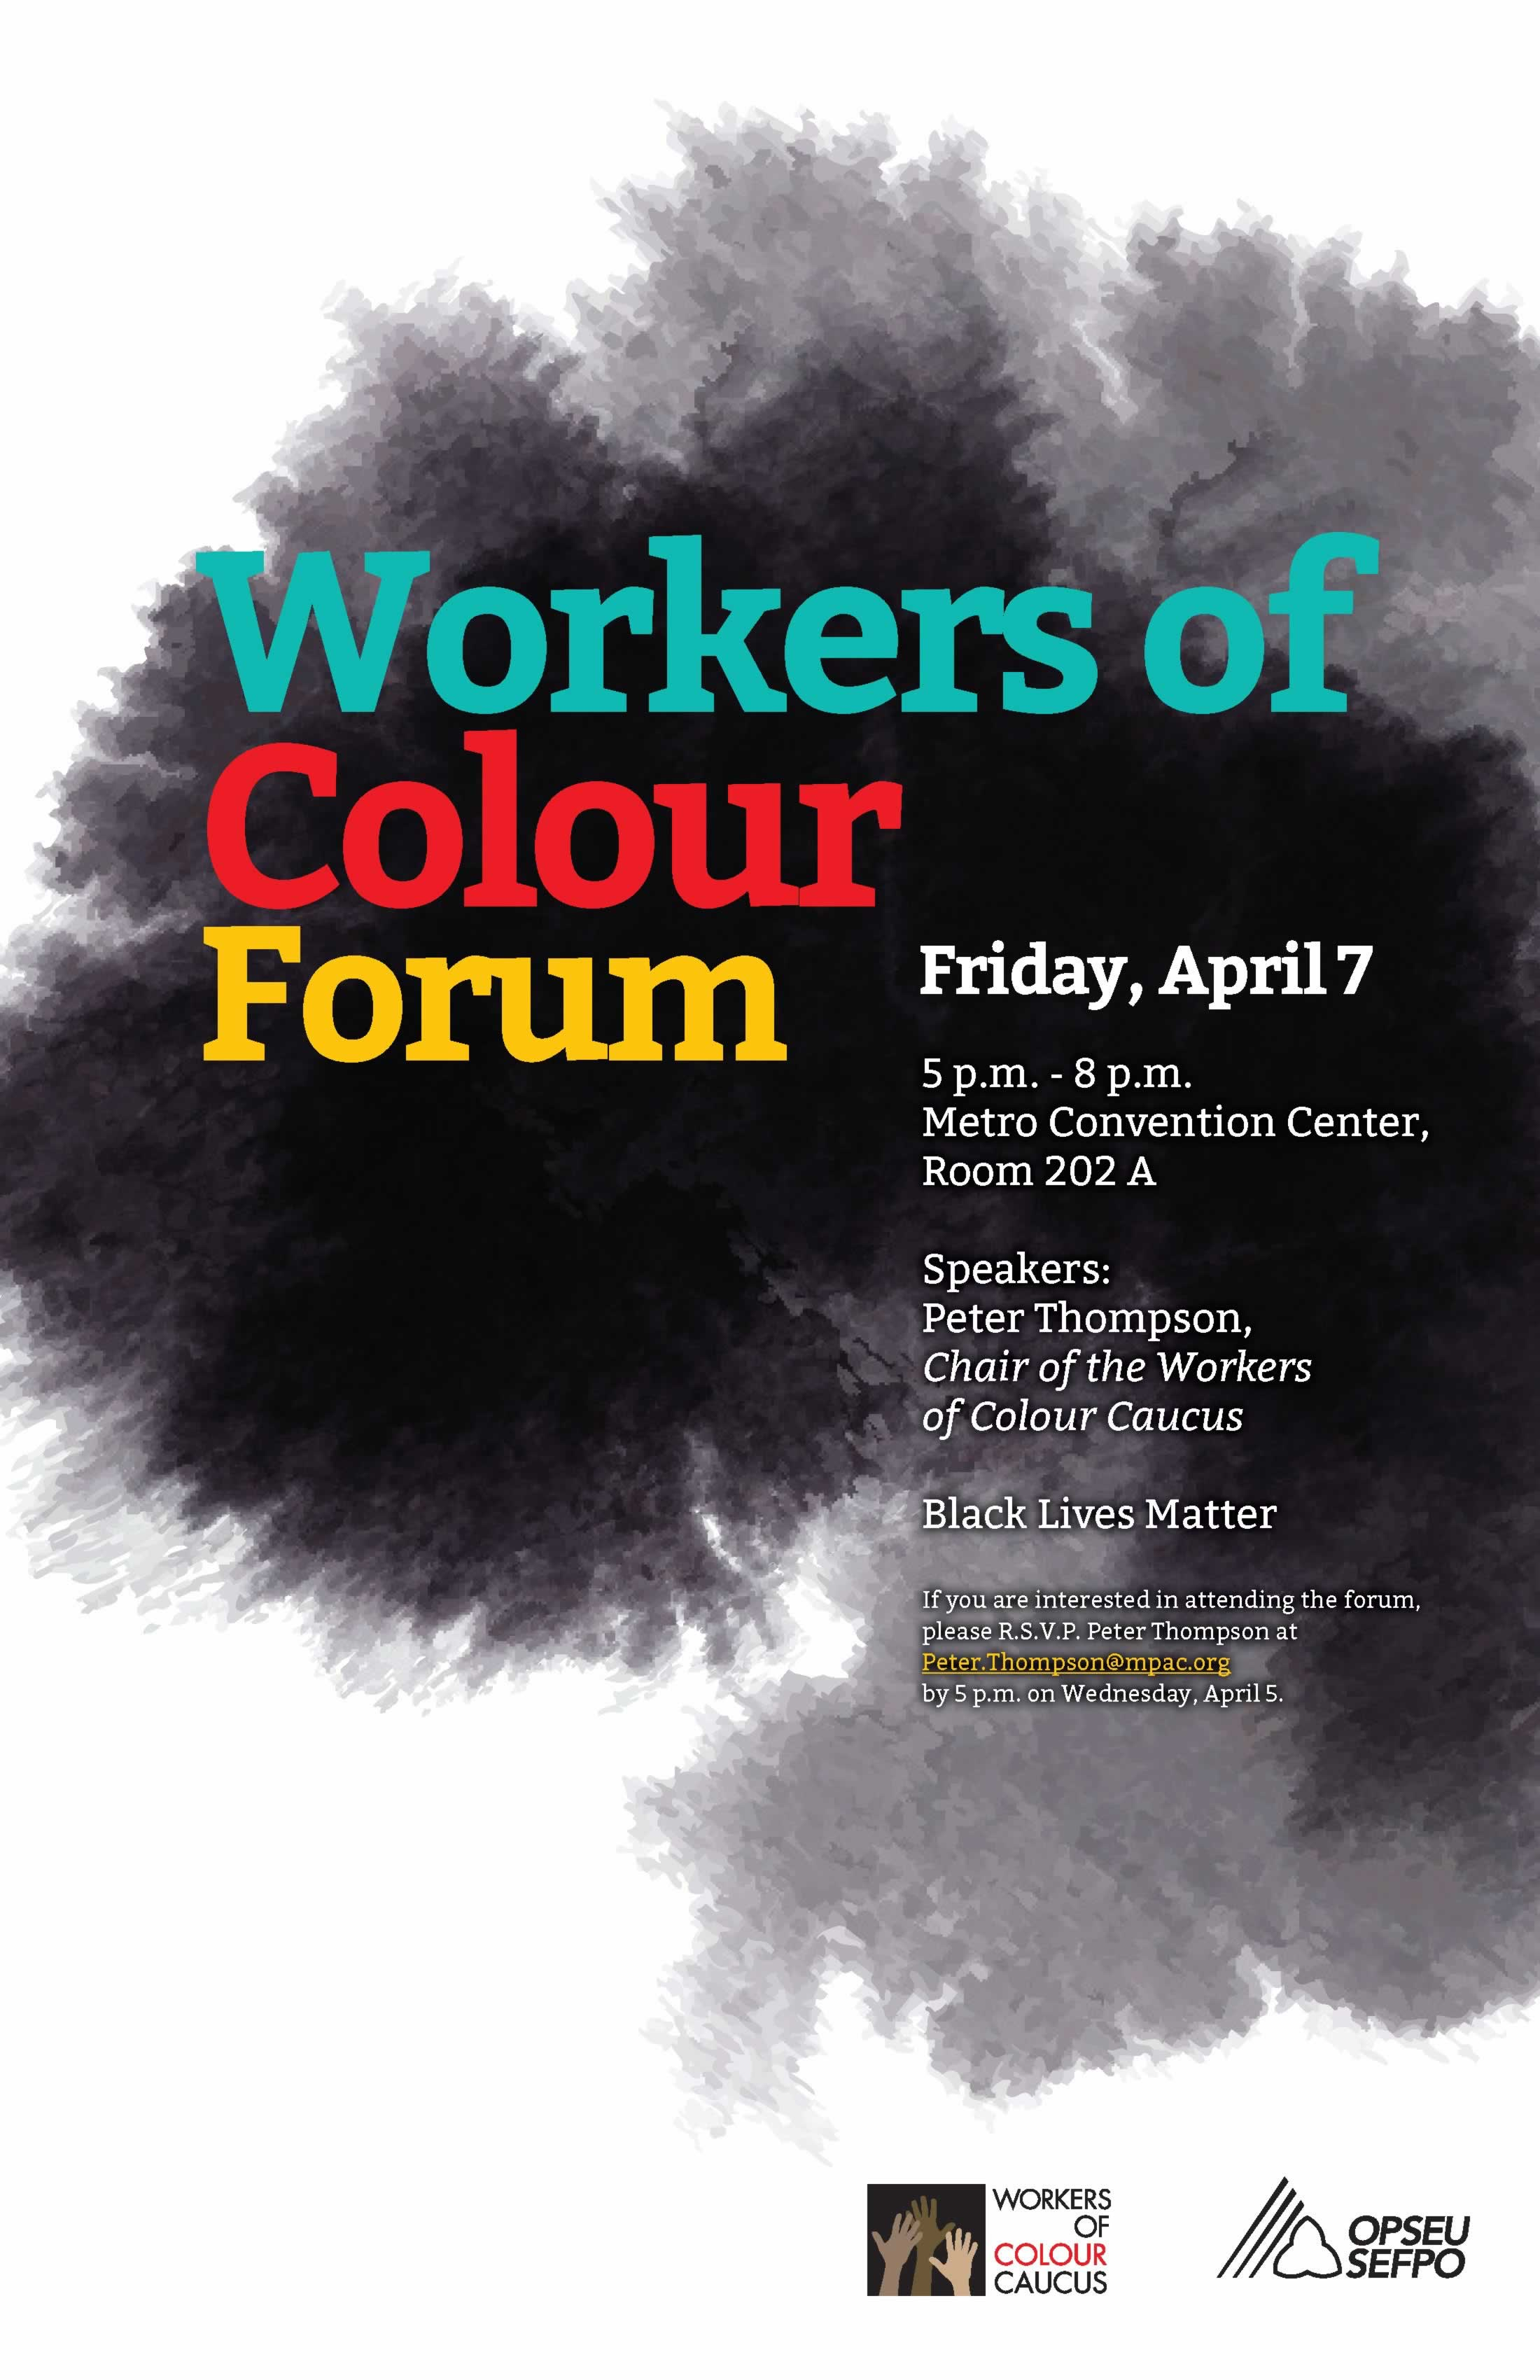 Workers of Colour Forum, April 7